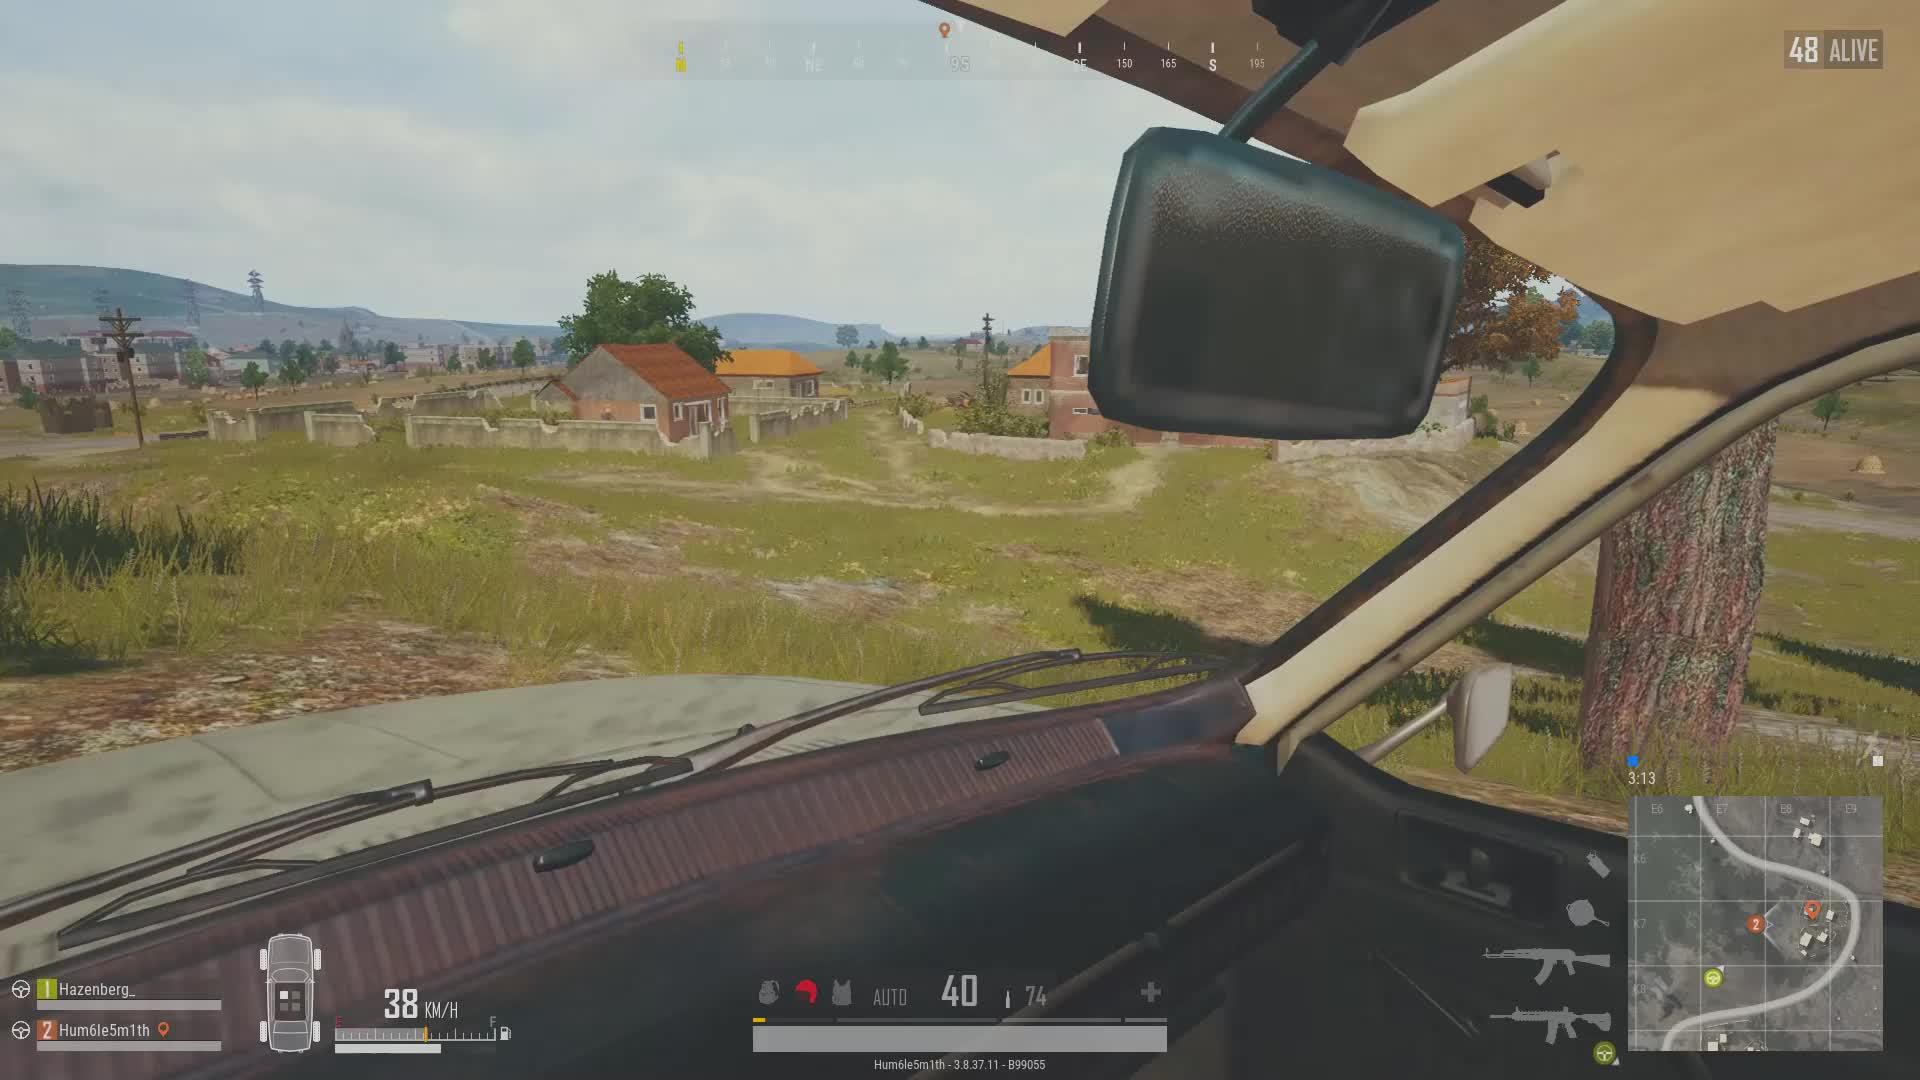 PUBATTLEGROUNDS, pubg, Wall slam, they say. It's save, they say. GIFs